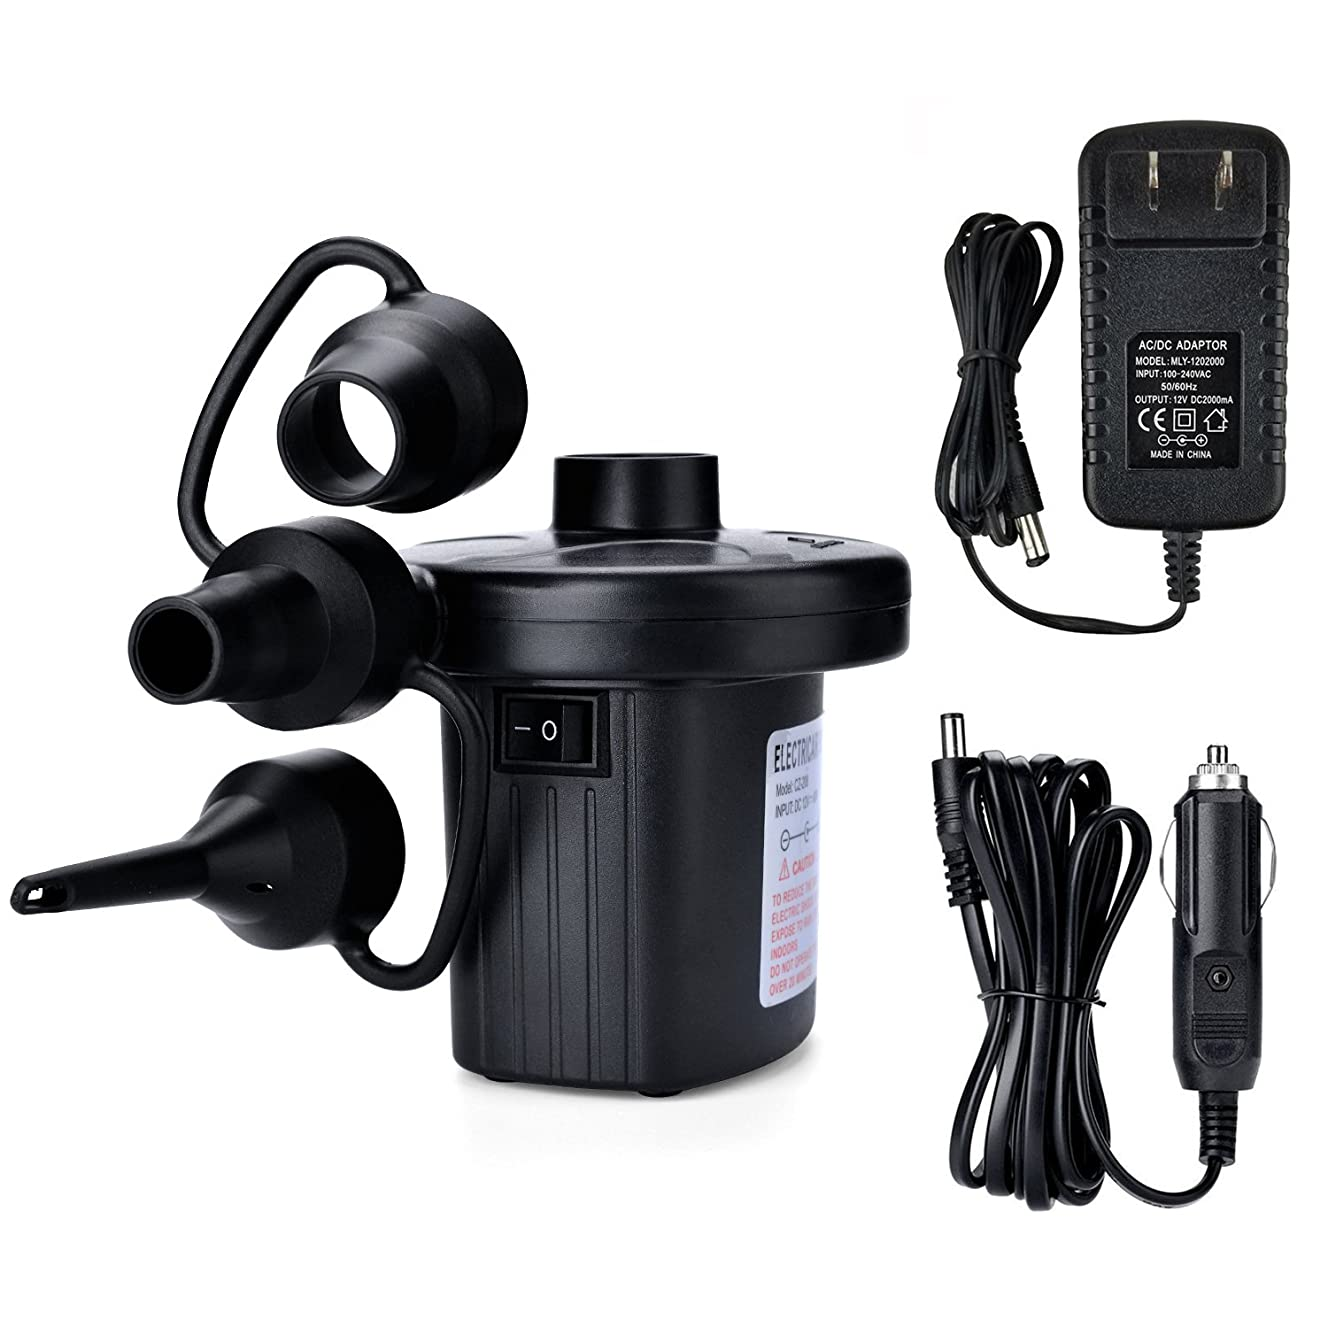 Electric Air Pump, AGPtEK Portable Quick-Fill Air Pump with 3 Nozzles, 110V AC/12V DC, Perfect Inflator/Deflator Pumps for Outdoor Camping, Inflatable Cushions, Air Mattress Beds, Boats, Swimming Ring bvj1946169